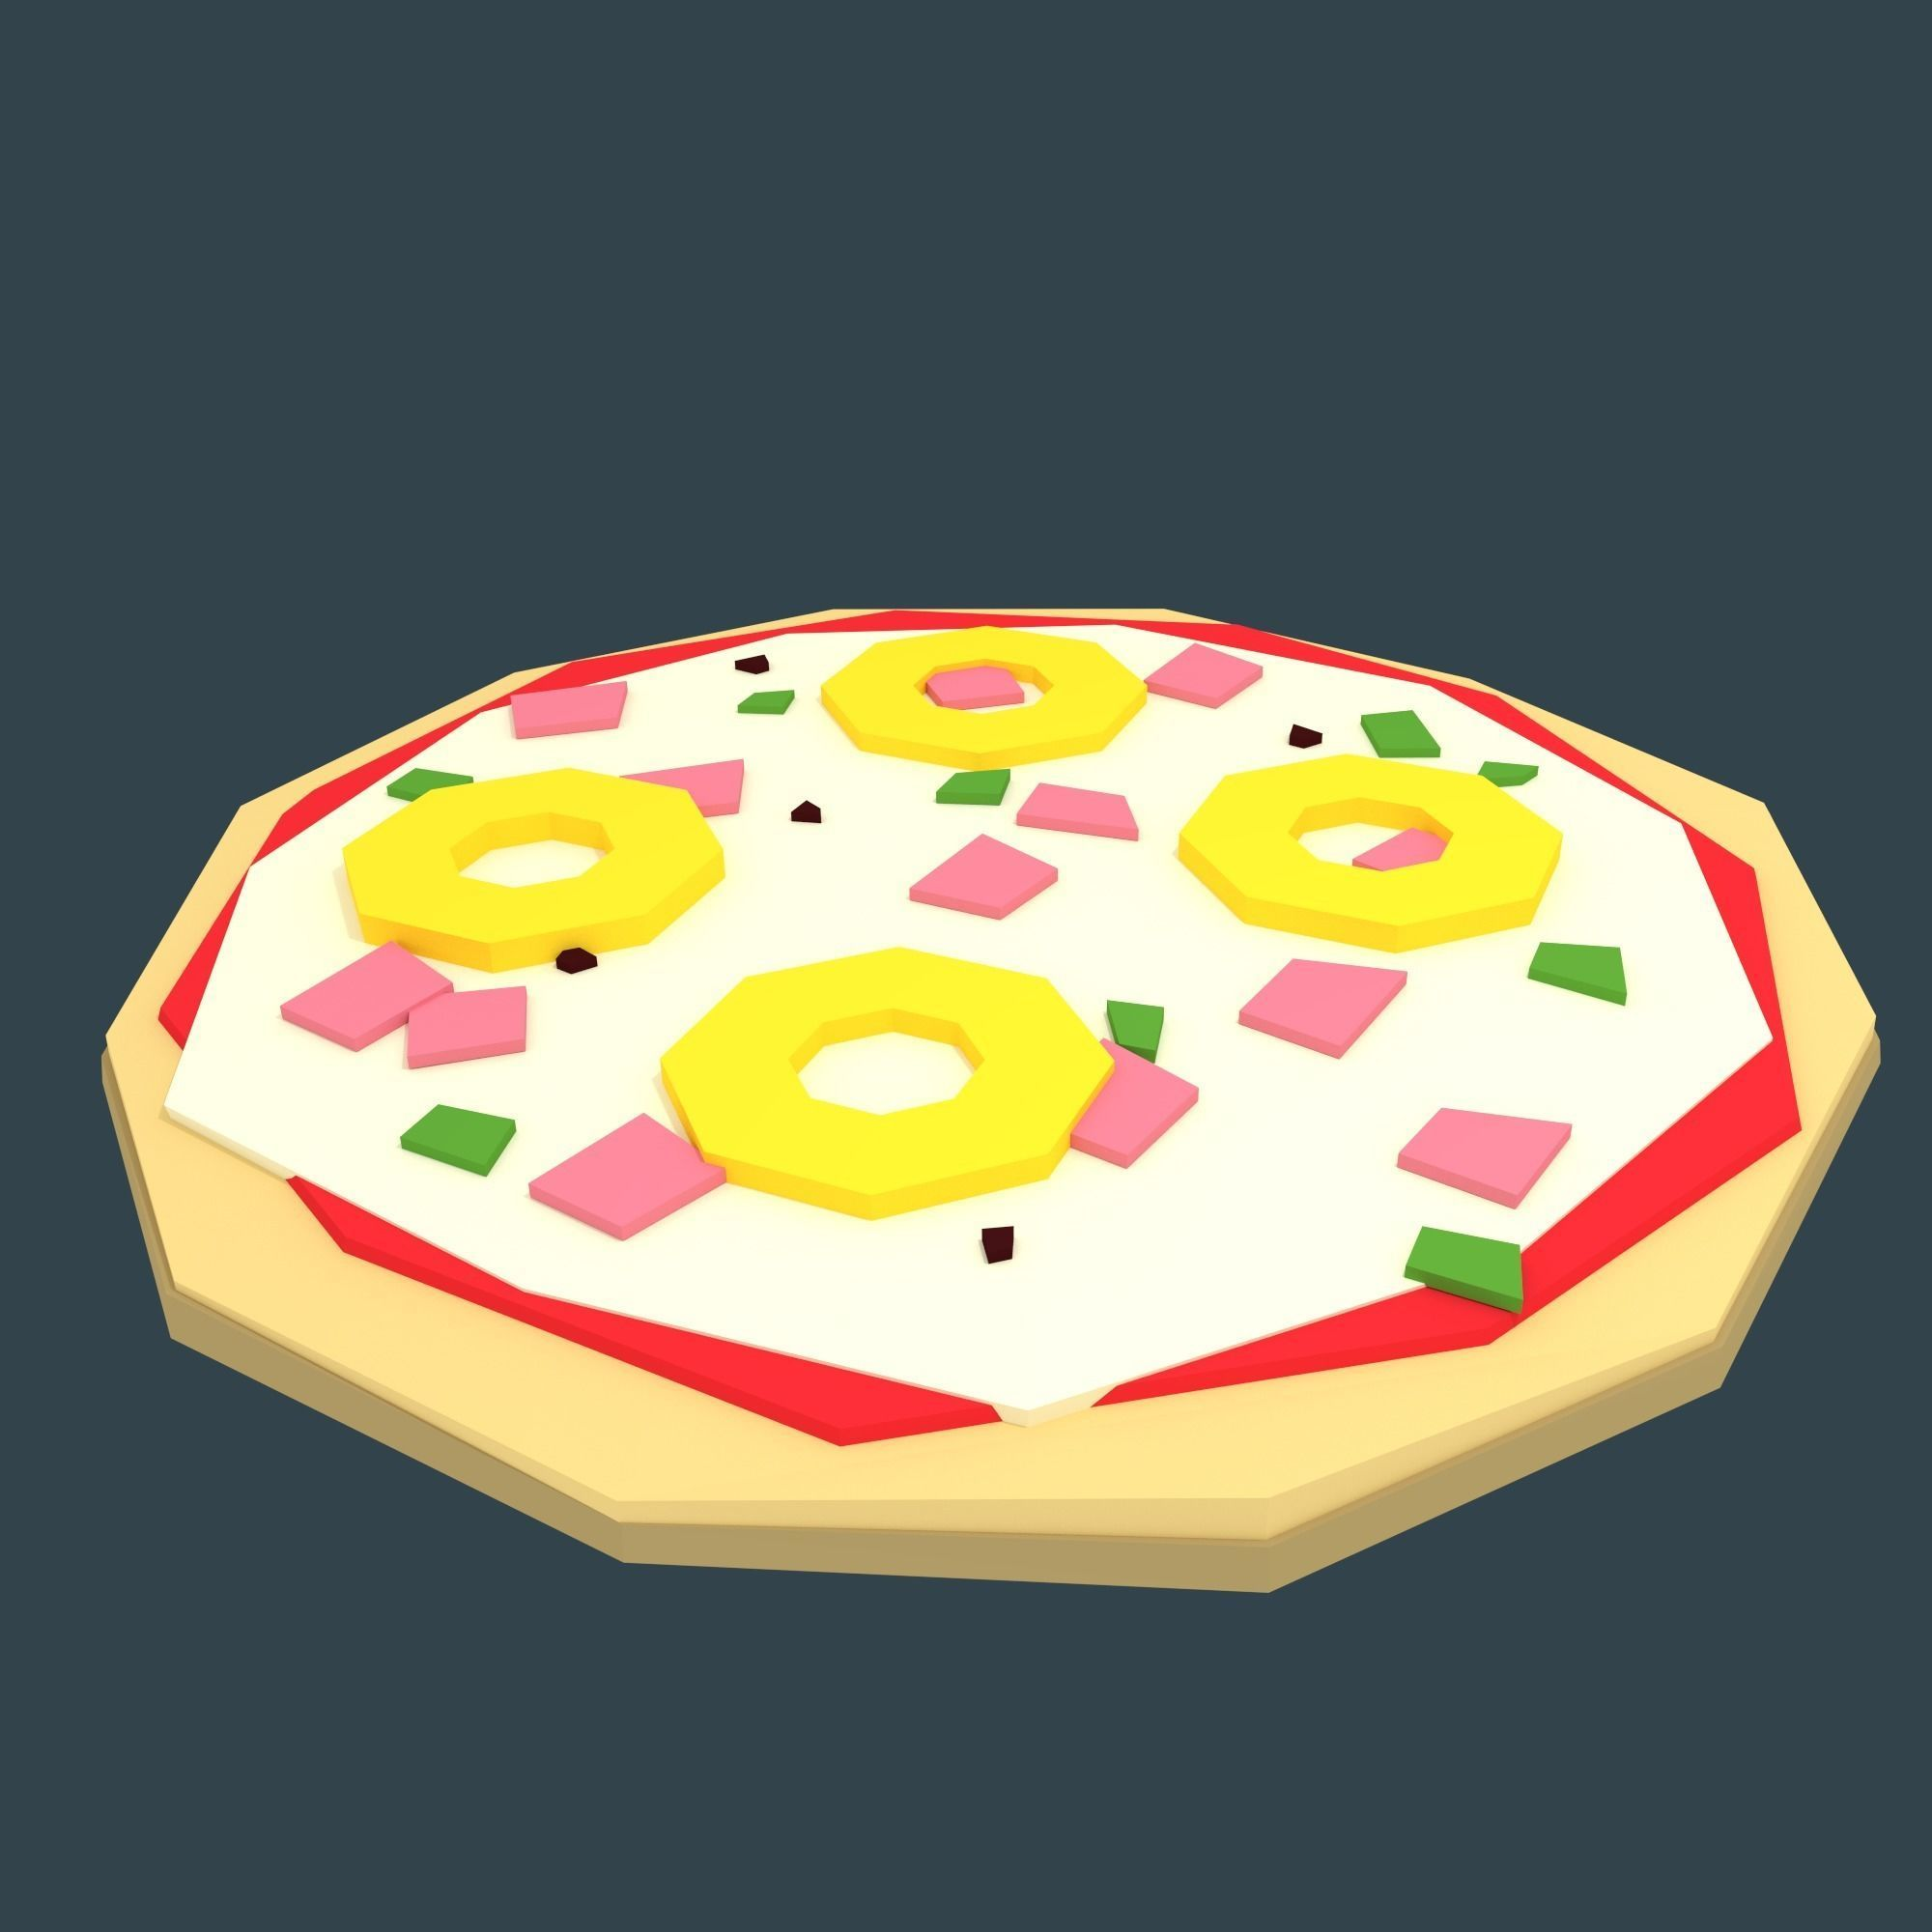 Low-poly stylized pizza hawaii